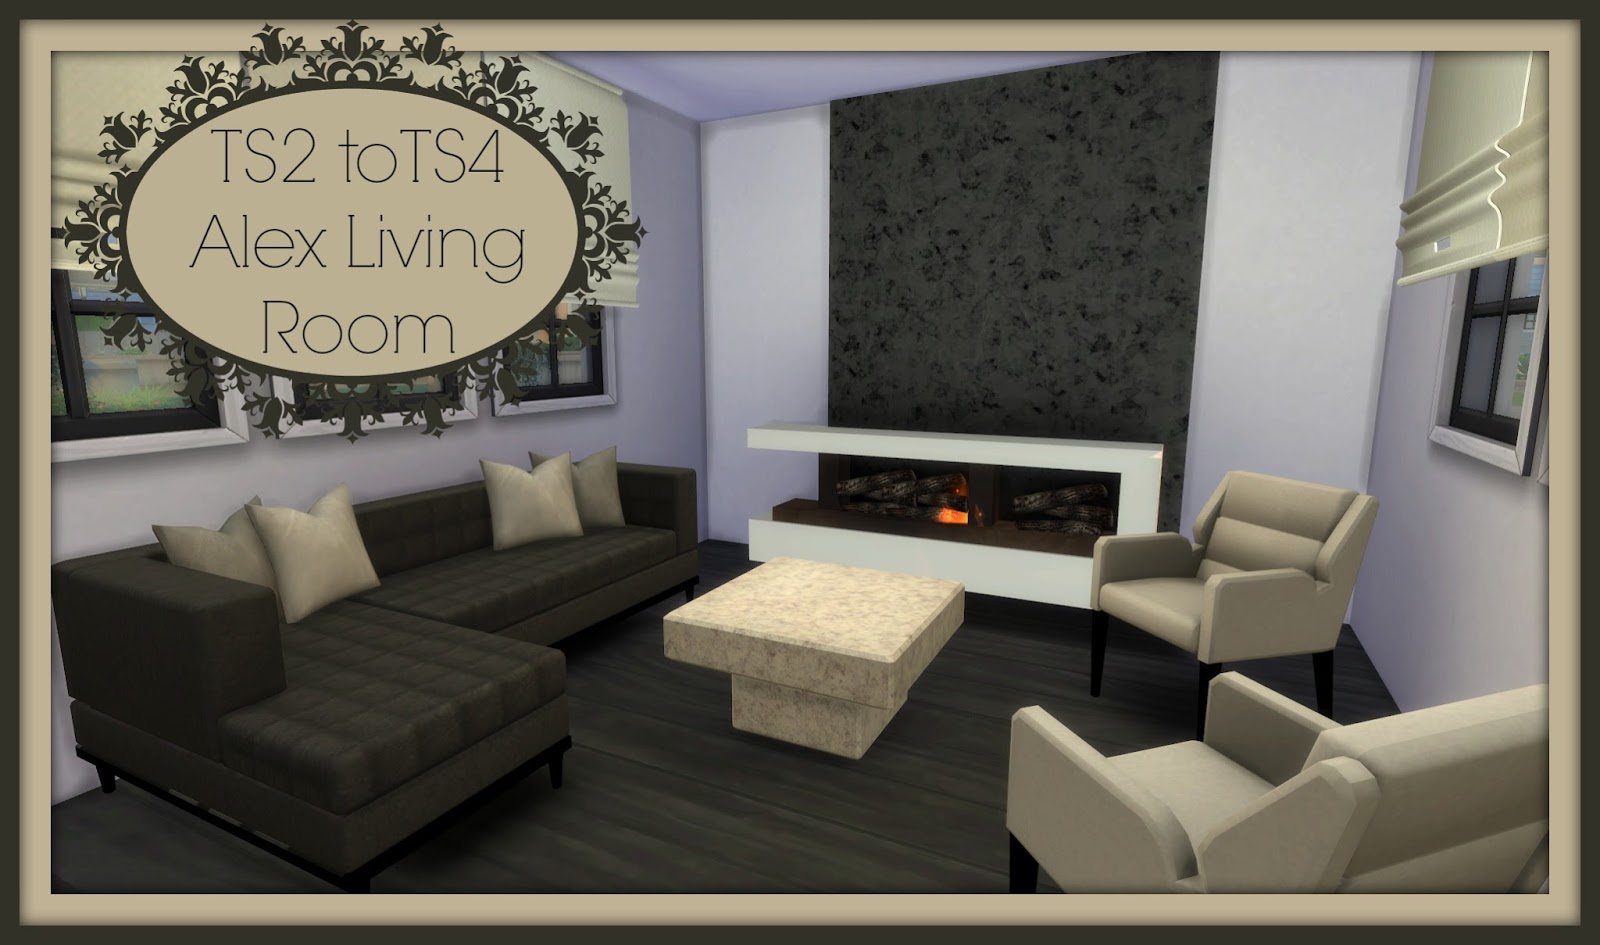 Sims 4 ts2 to ts4 alex living room dinha for Modern living room sims 4